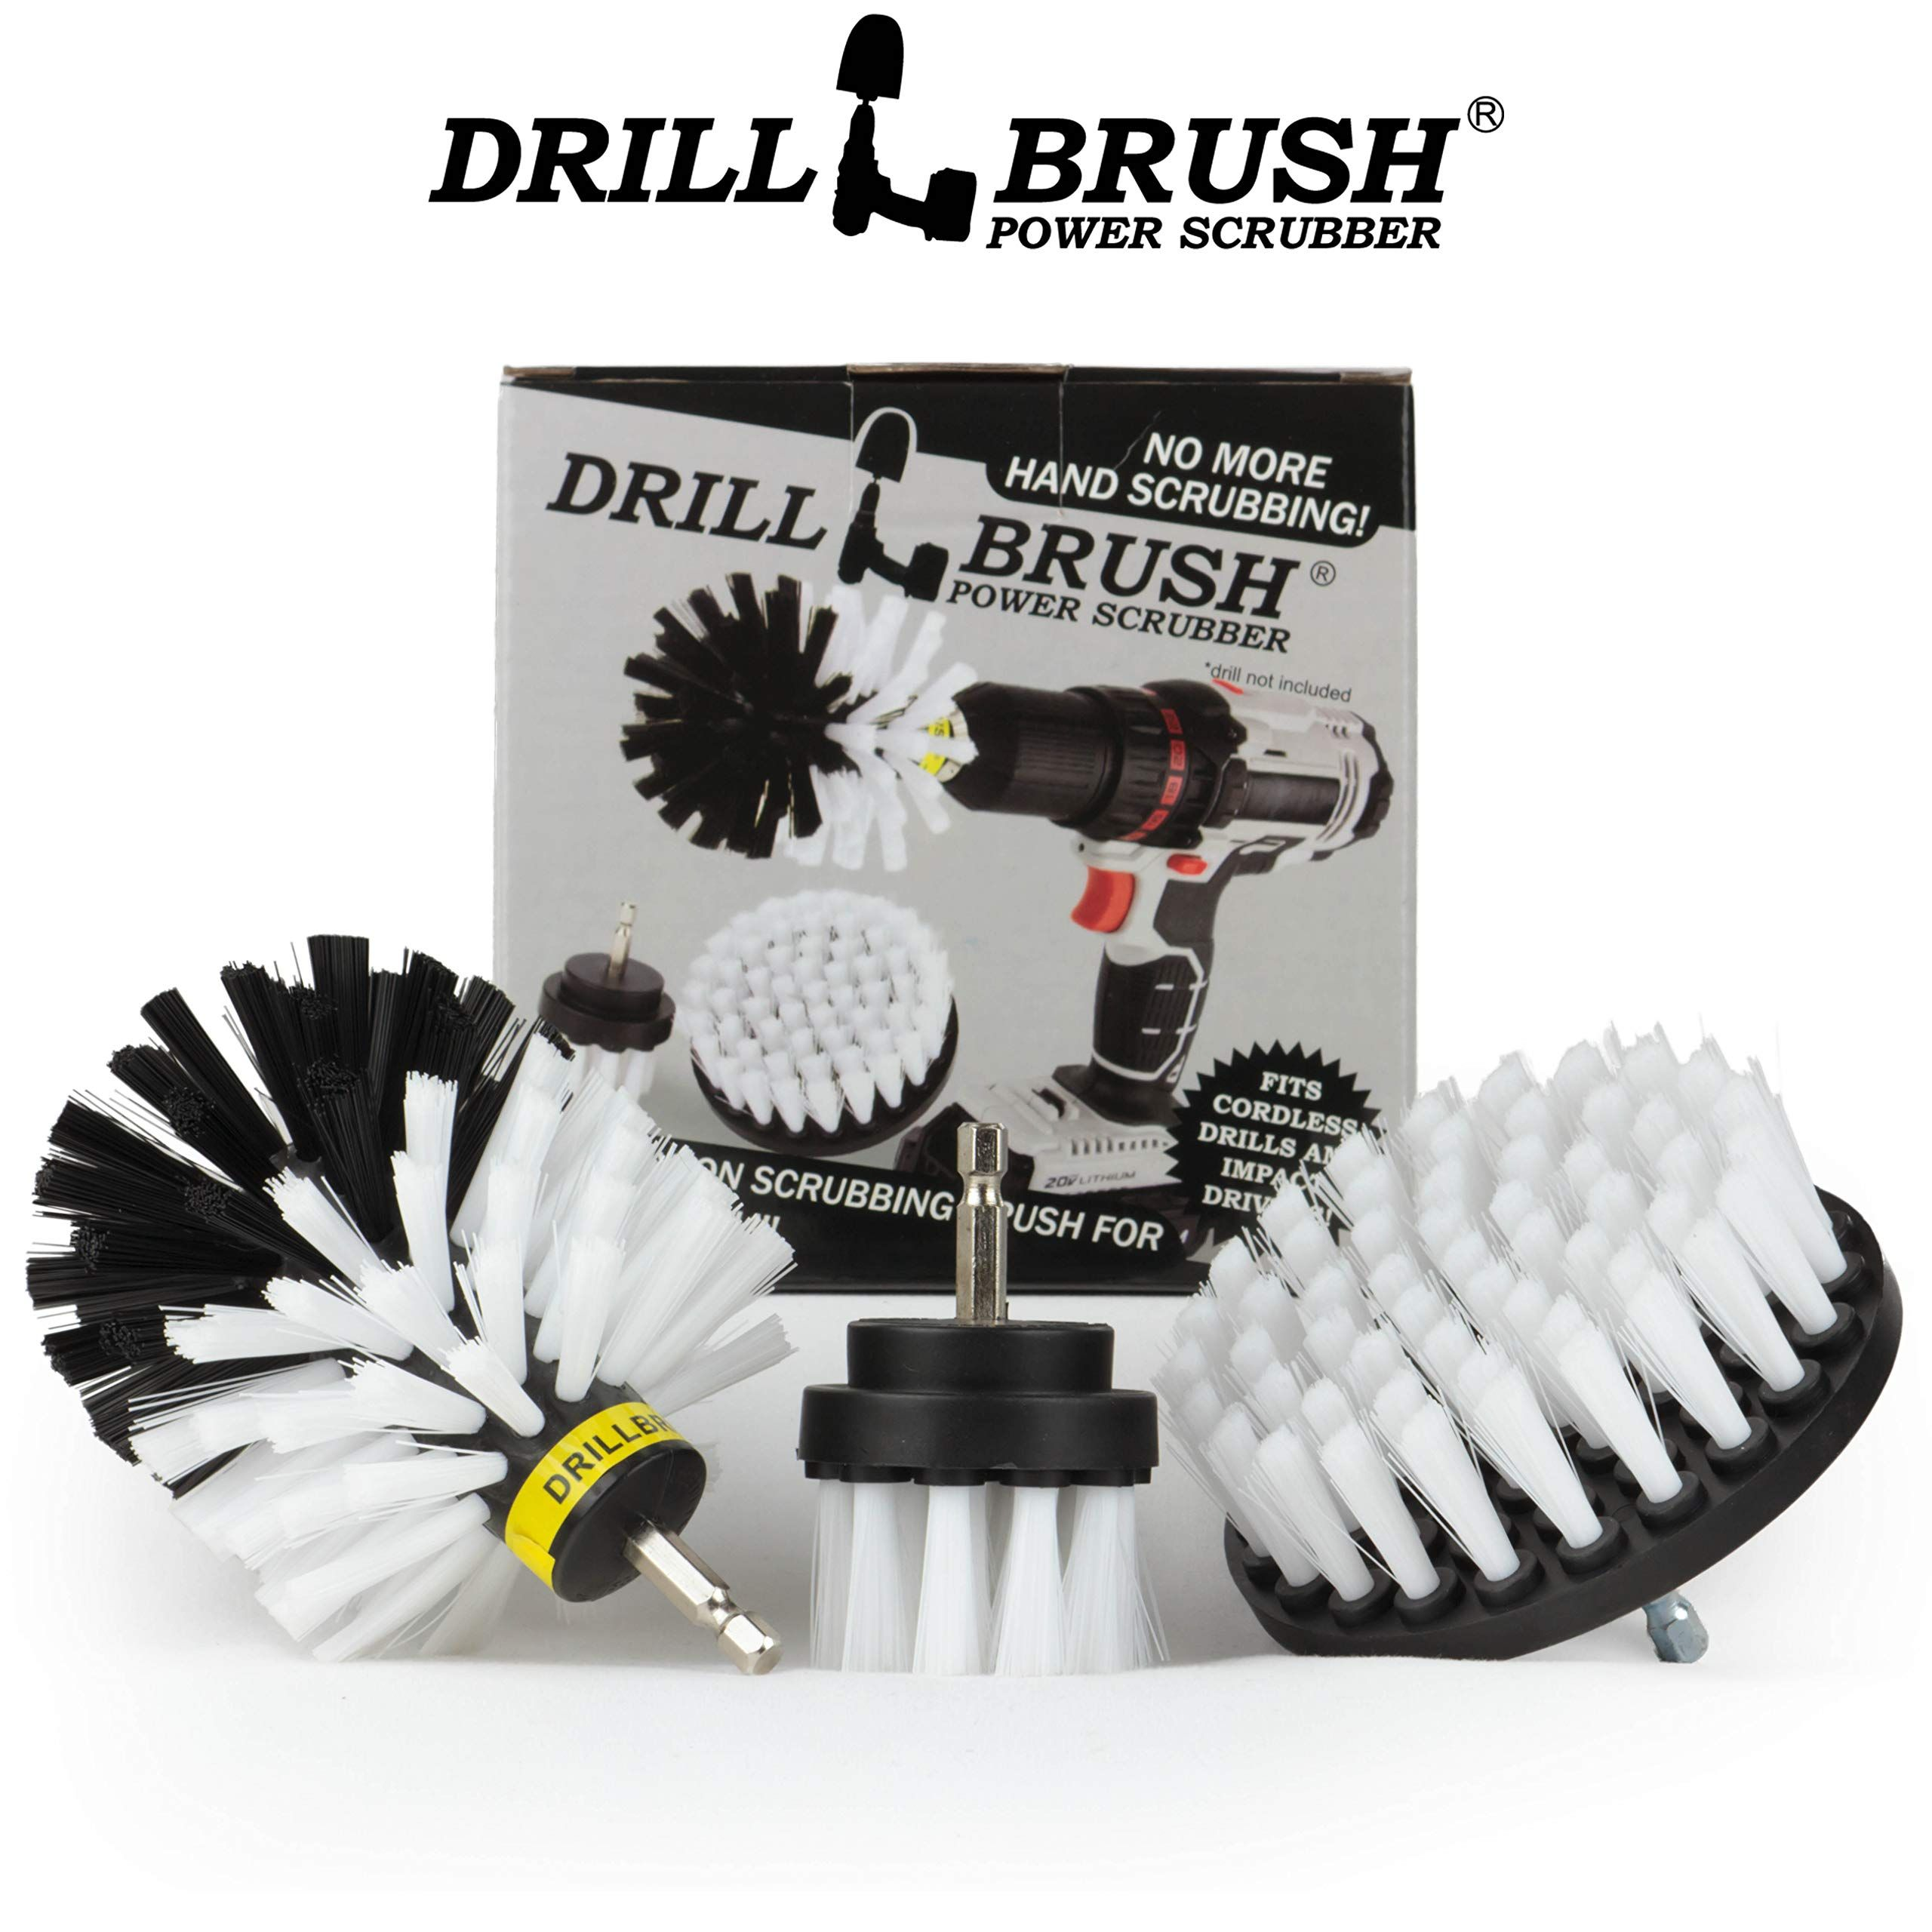 Drillbrush 3 piece drill brush cleaning tool attachment